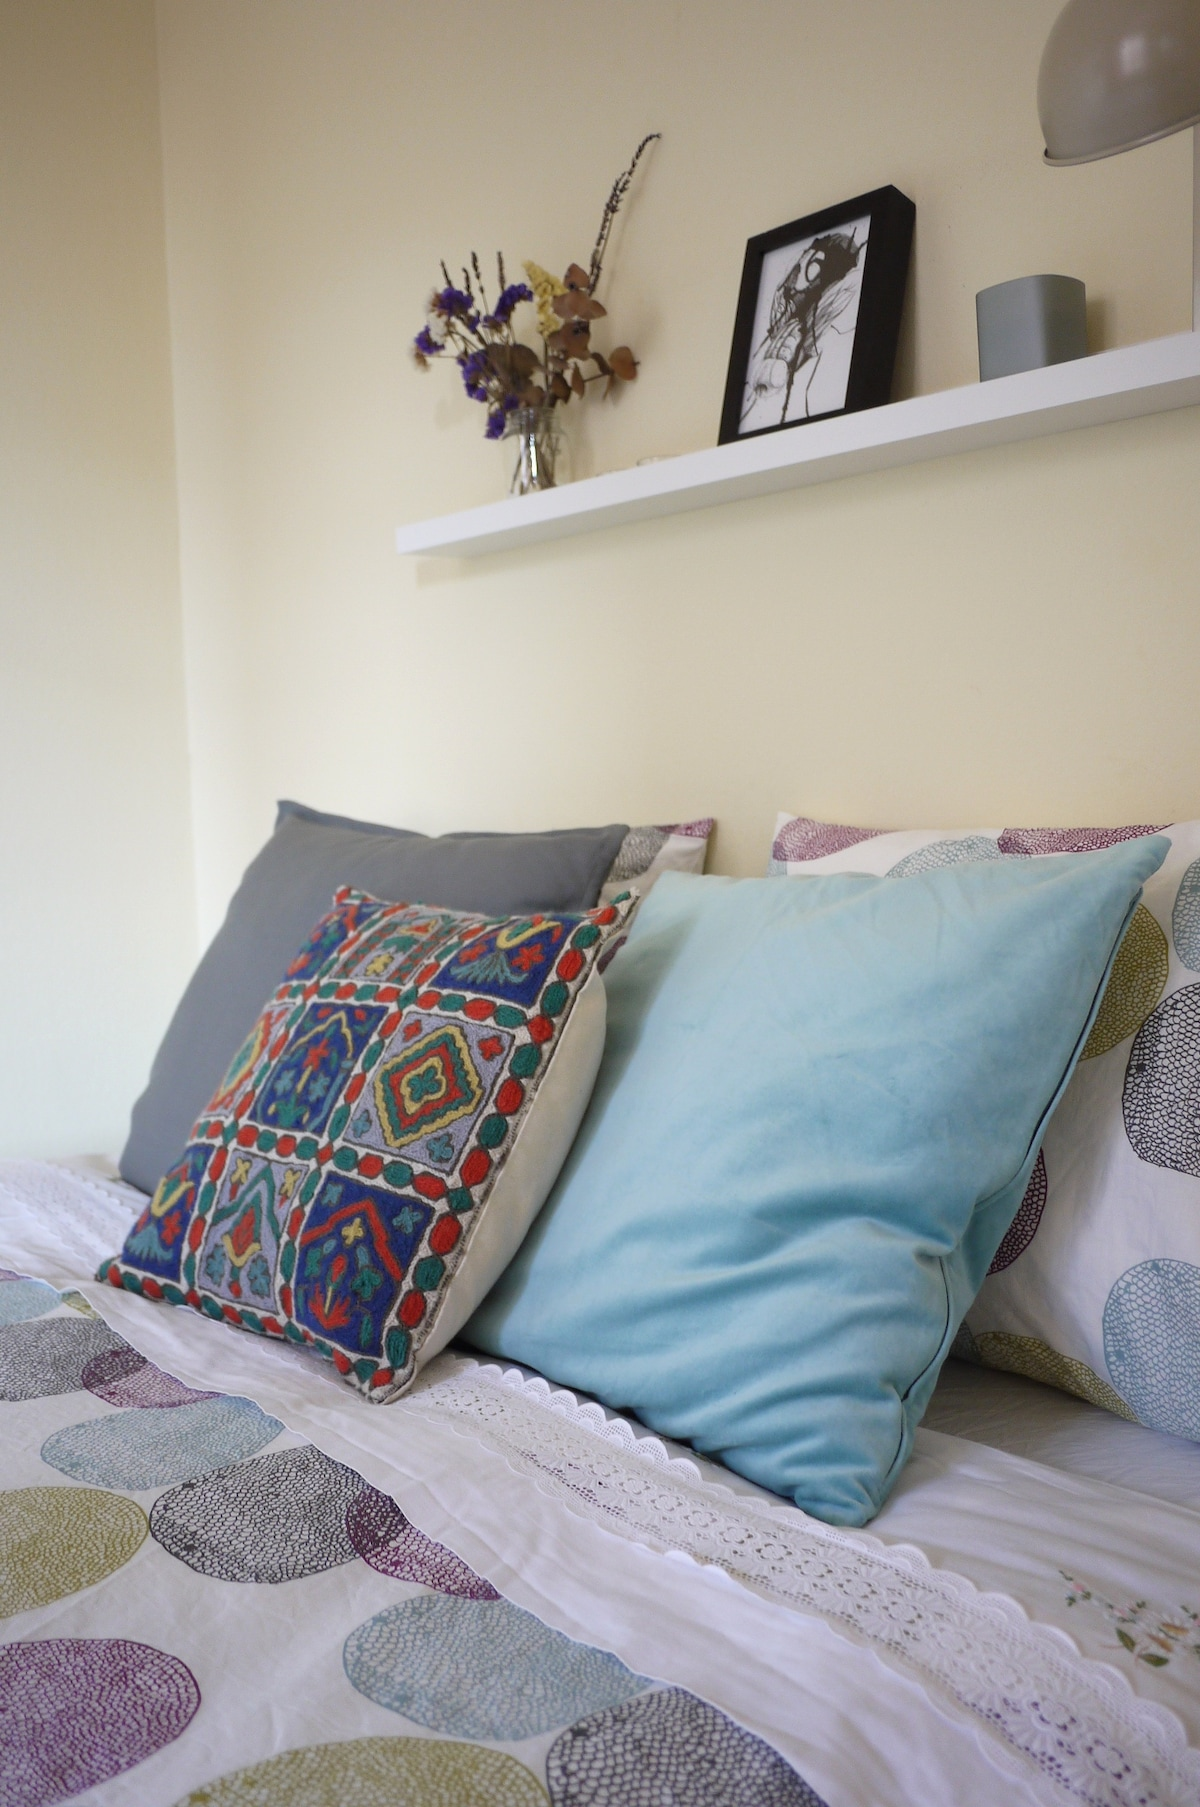 Lots of different pillows to choose the most confortable for you!